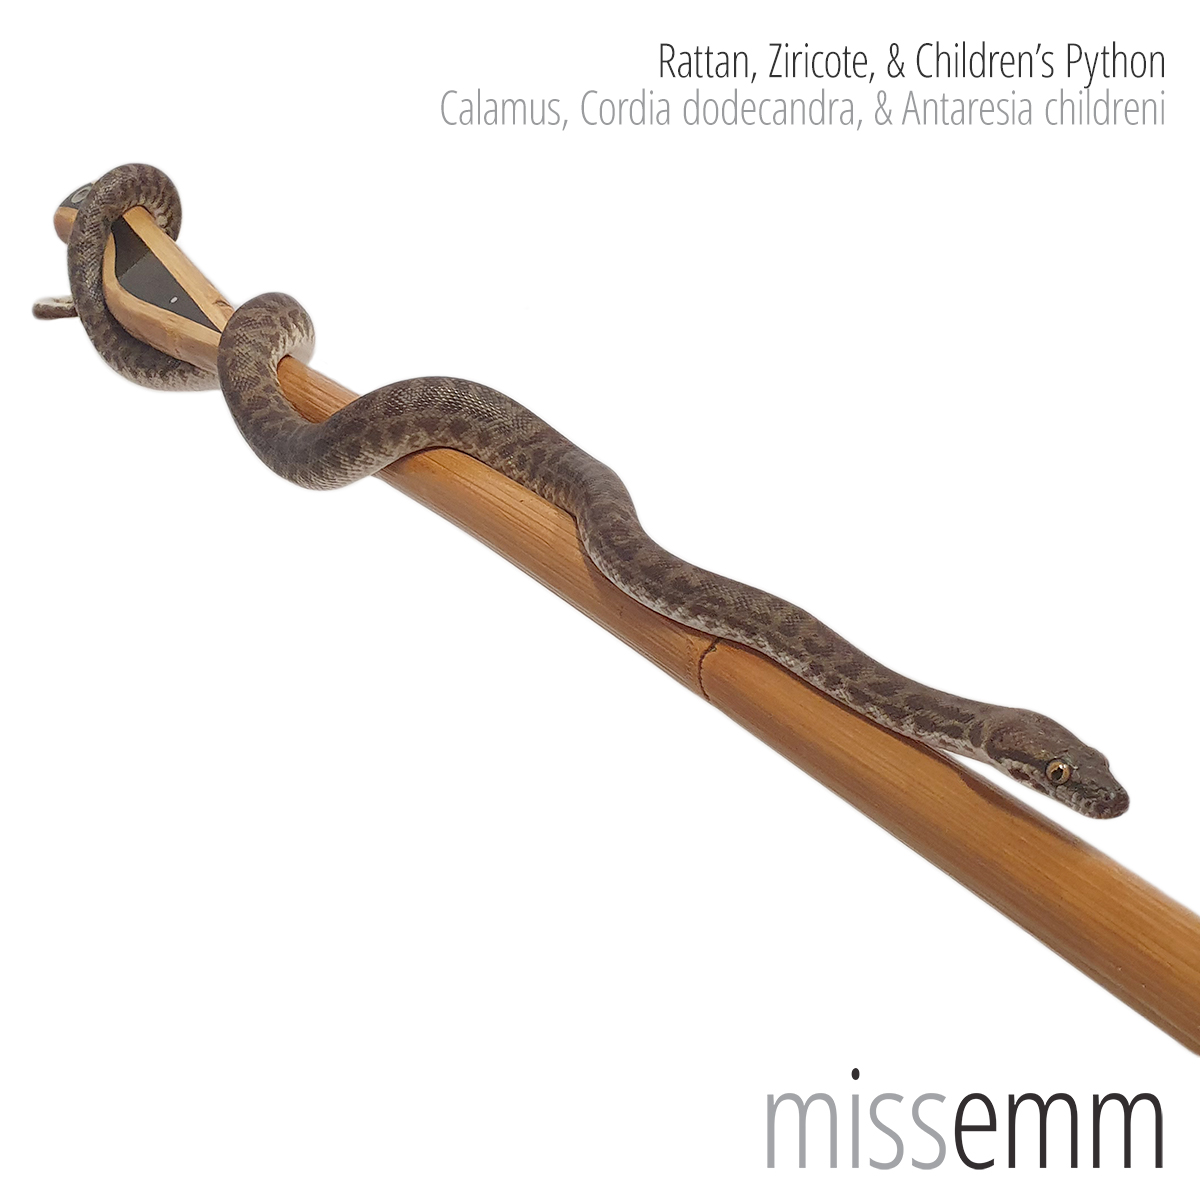 Rattan and Ziricote cane by Australian fetish toy maker Miss Emm